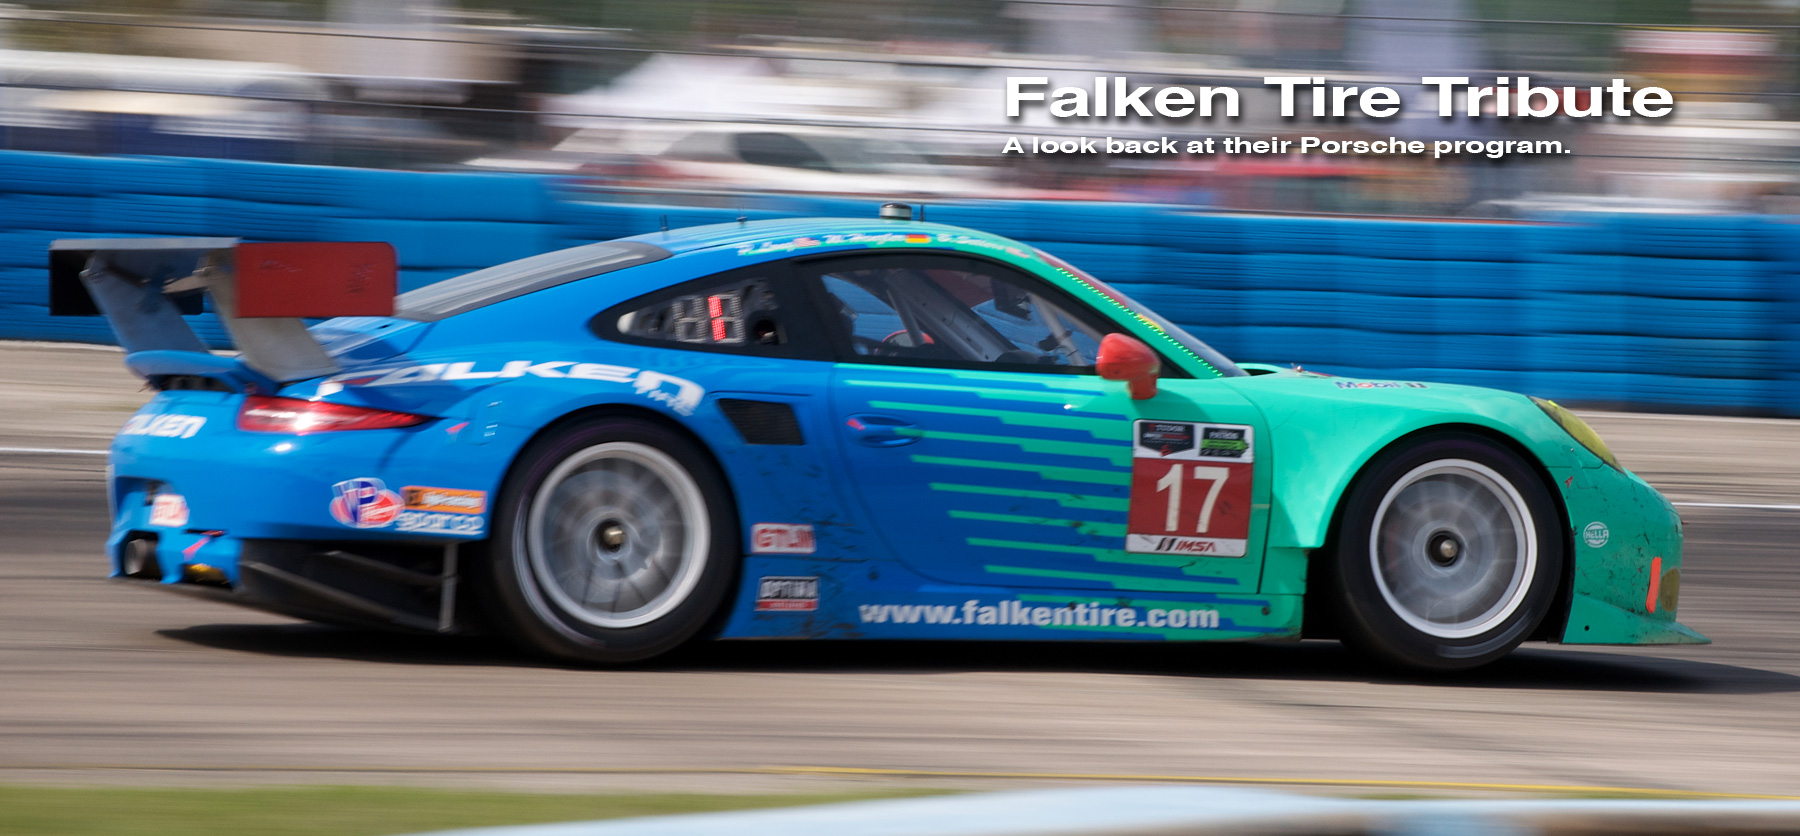 Header image for the Falken Tire tribute gallery.